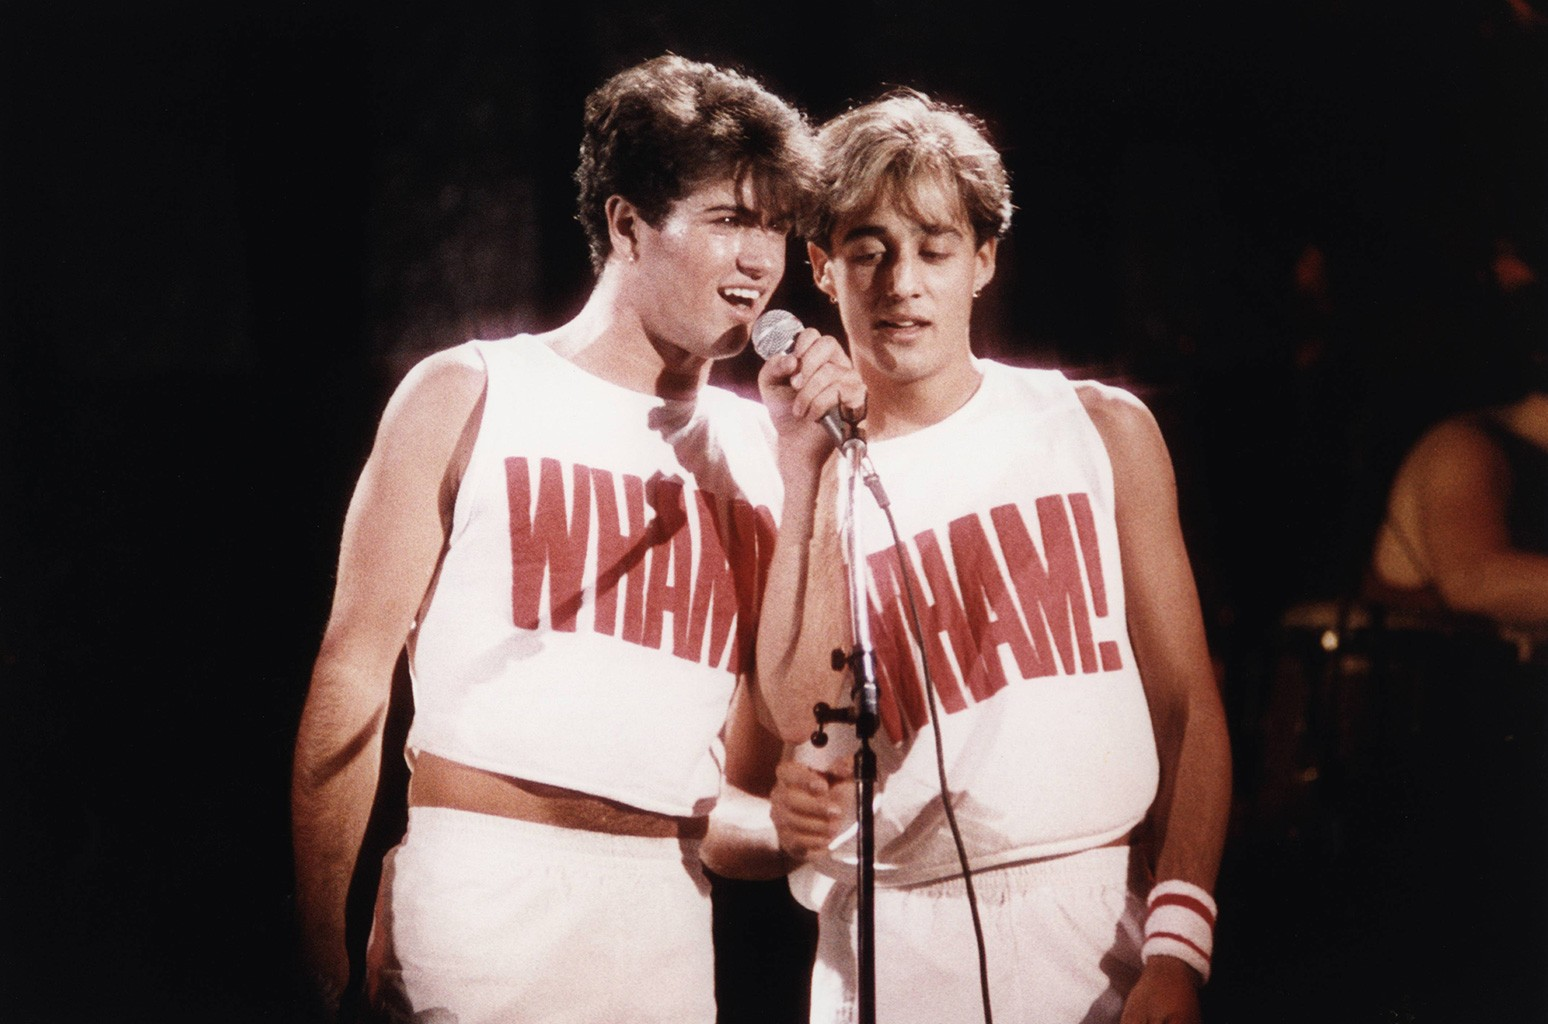 Wham's last Christmas completes his 36-year journey to the top of the UK chart